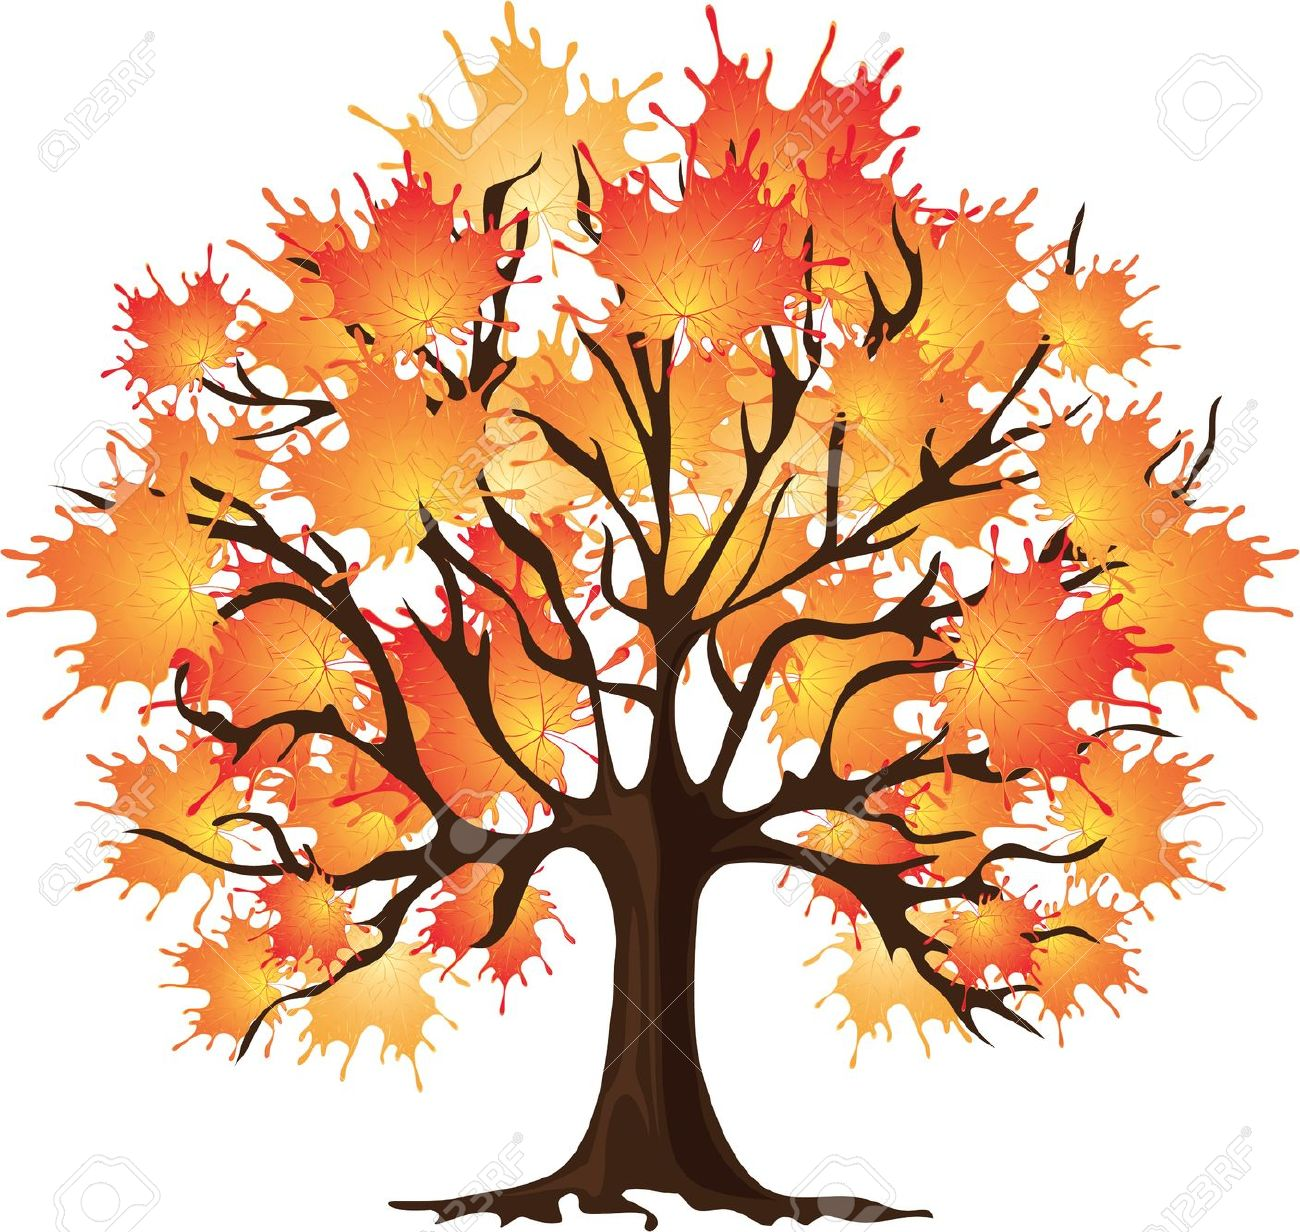 tree drawing clip art at getdrawings com free for personal use rh getdrawings com fall tree clip art free fall tree clipart free